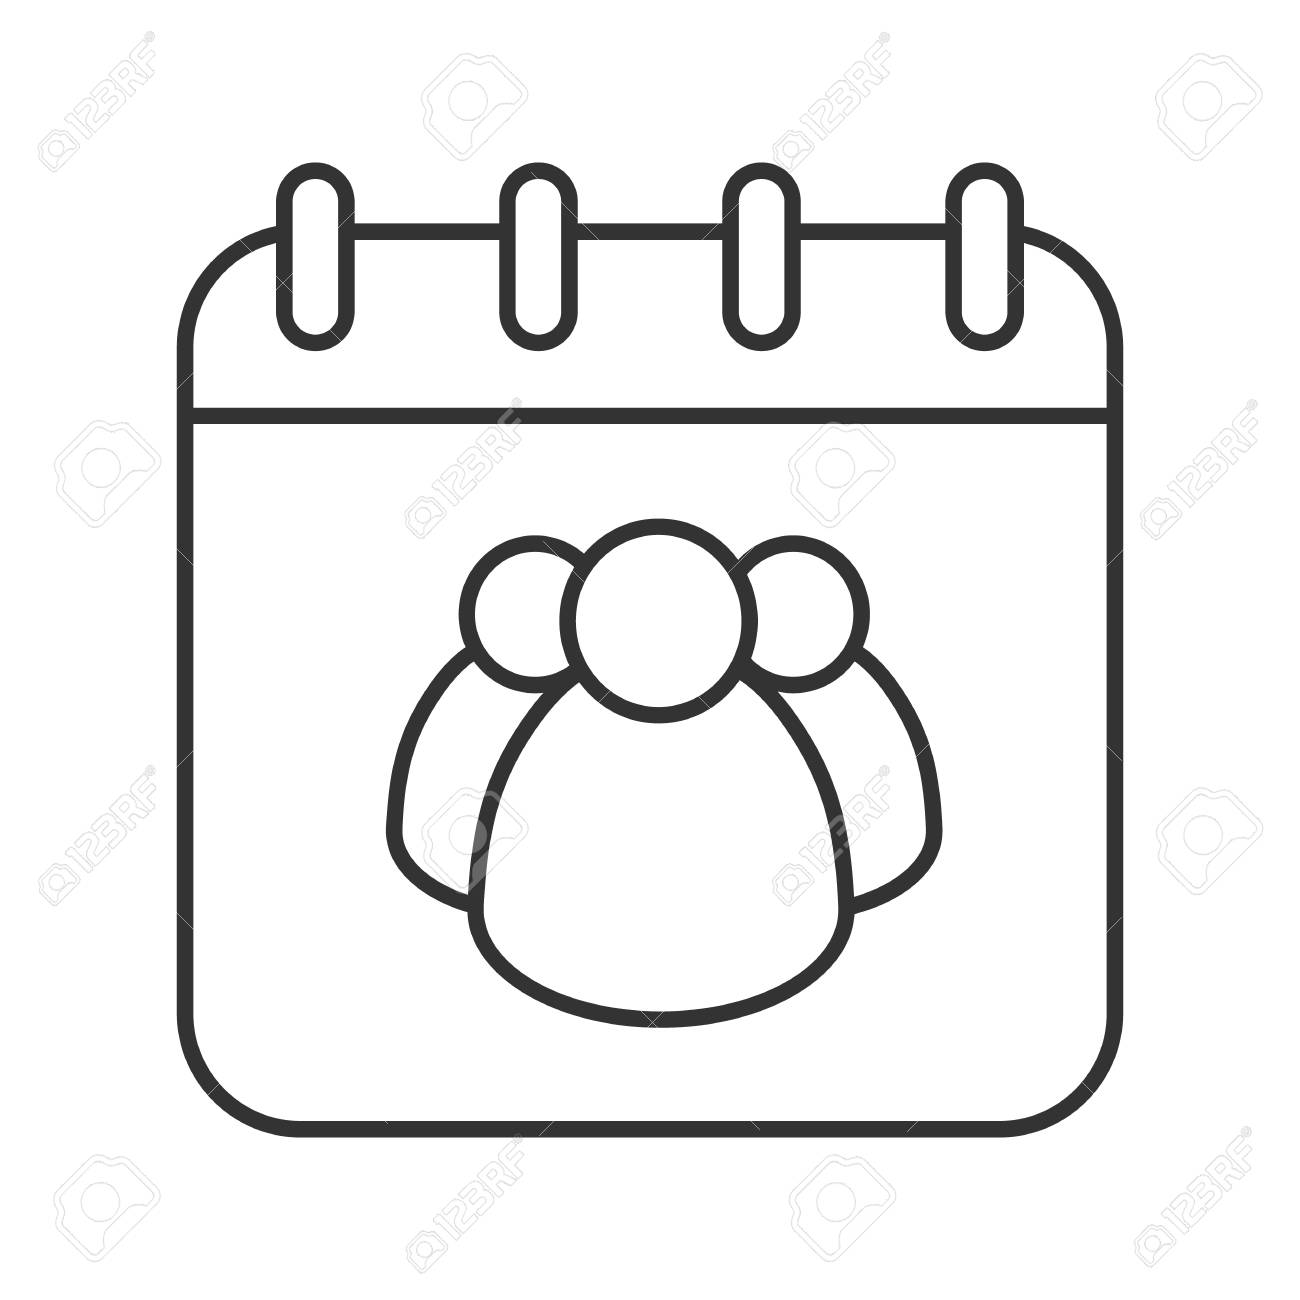 group calendar linear icon thin line illustration team work schedule calendar page with group